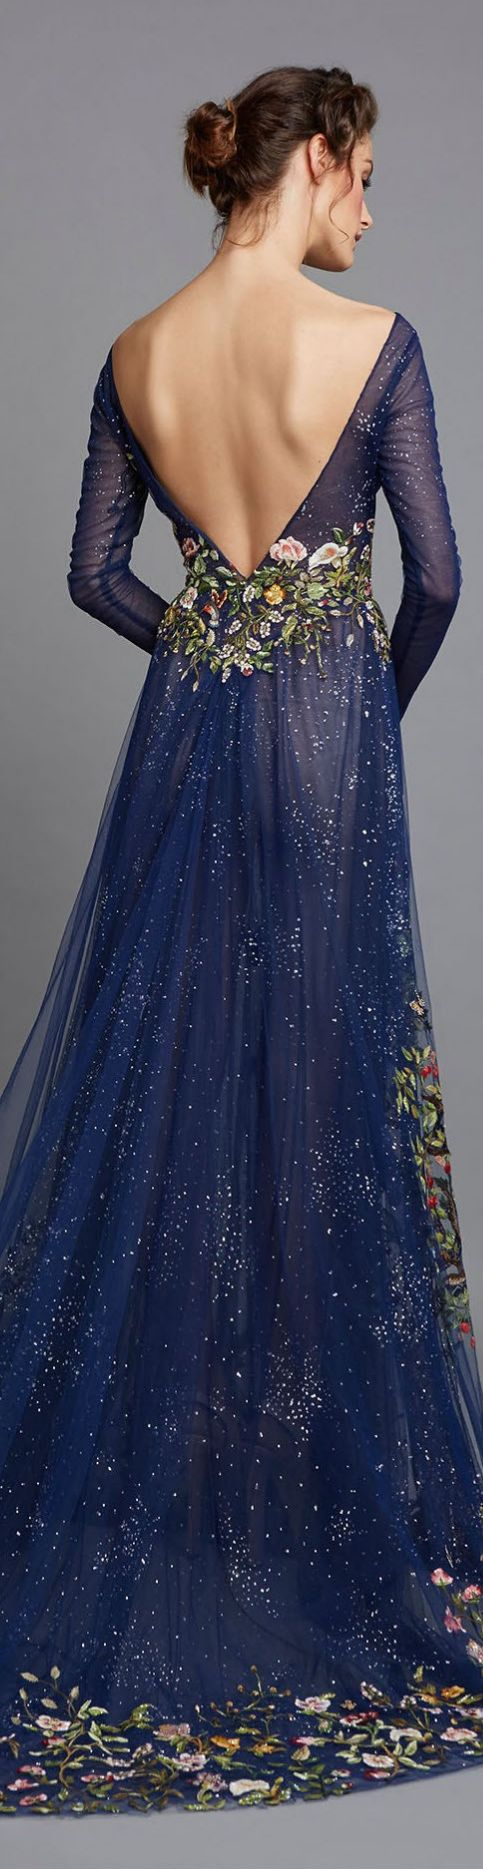 Hamda Al Fahim ~ Floral Embroidered  Open Back Midnight Blue Gown 2015